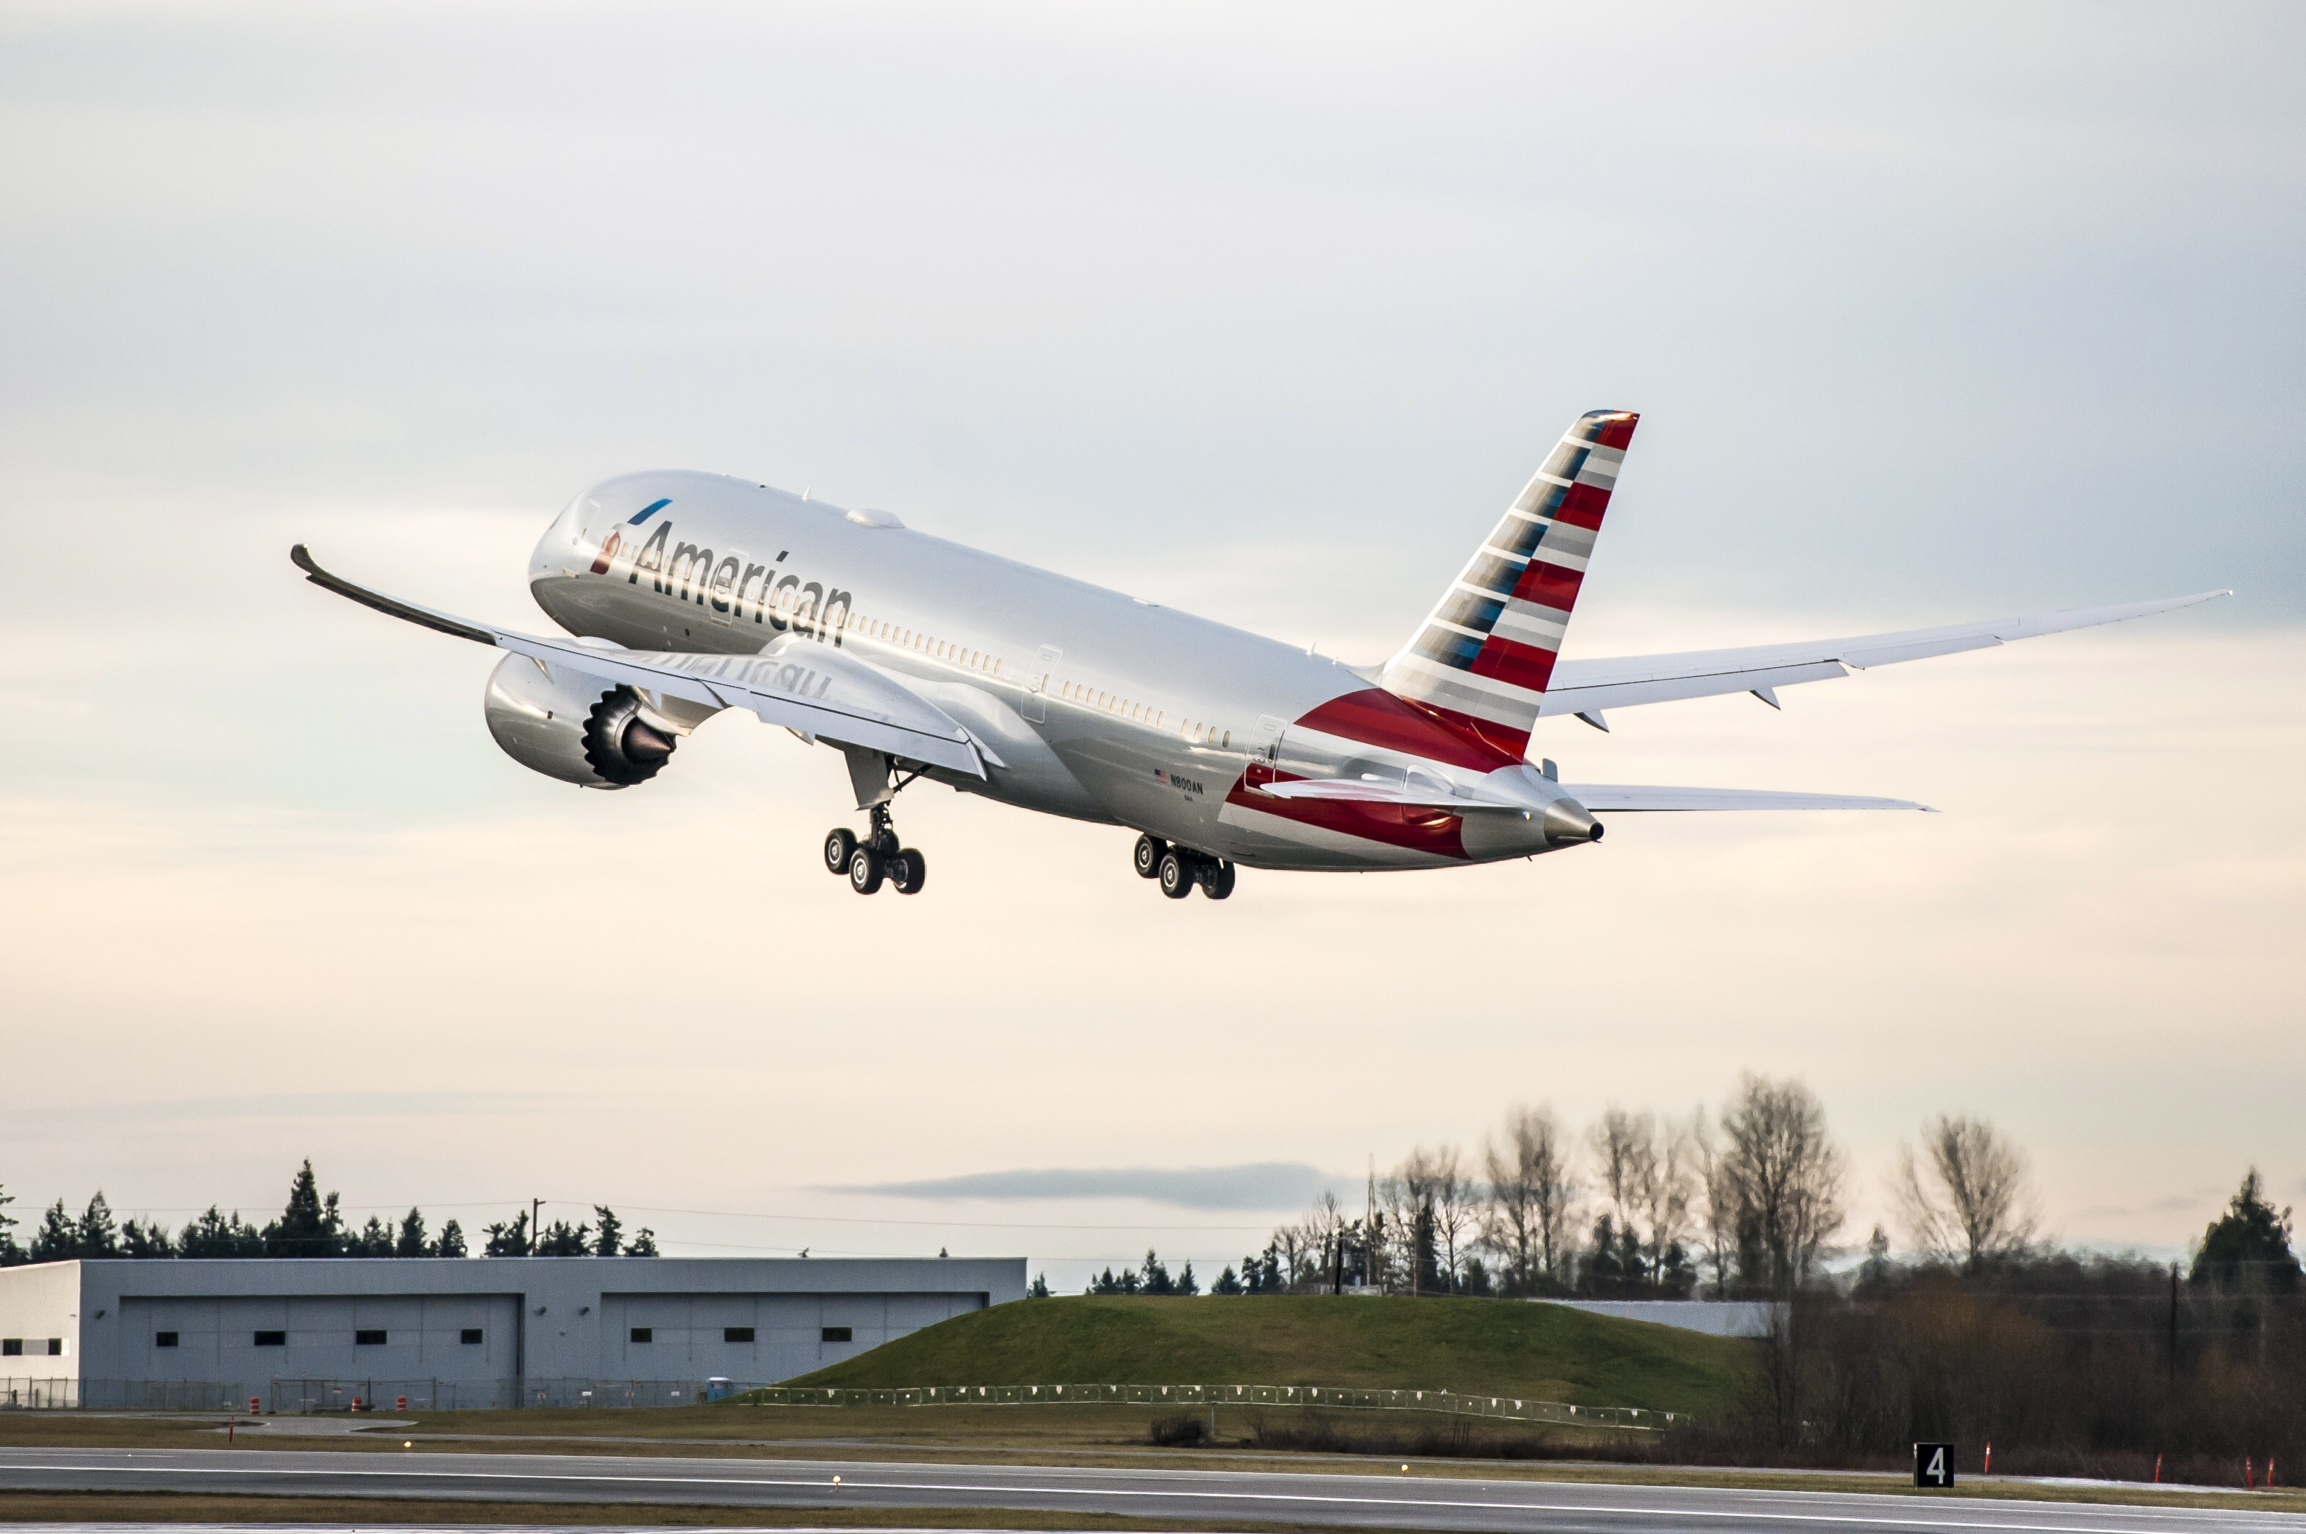 American Airlines will begin LAX-AKL service in June 2016 using its Boeing 787-8 aircraft (shown)